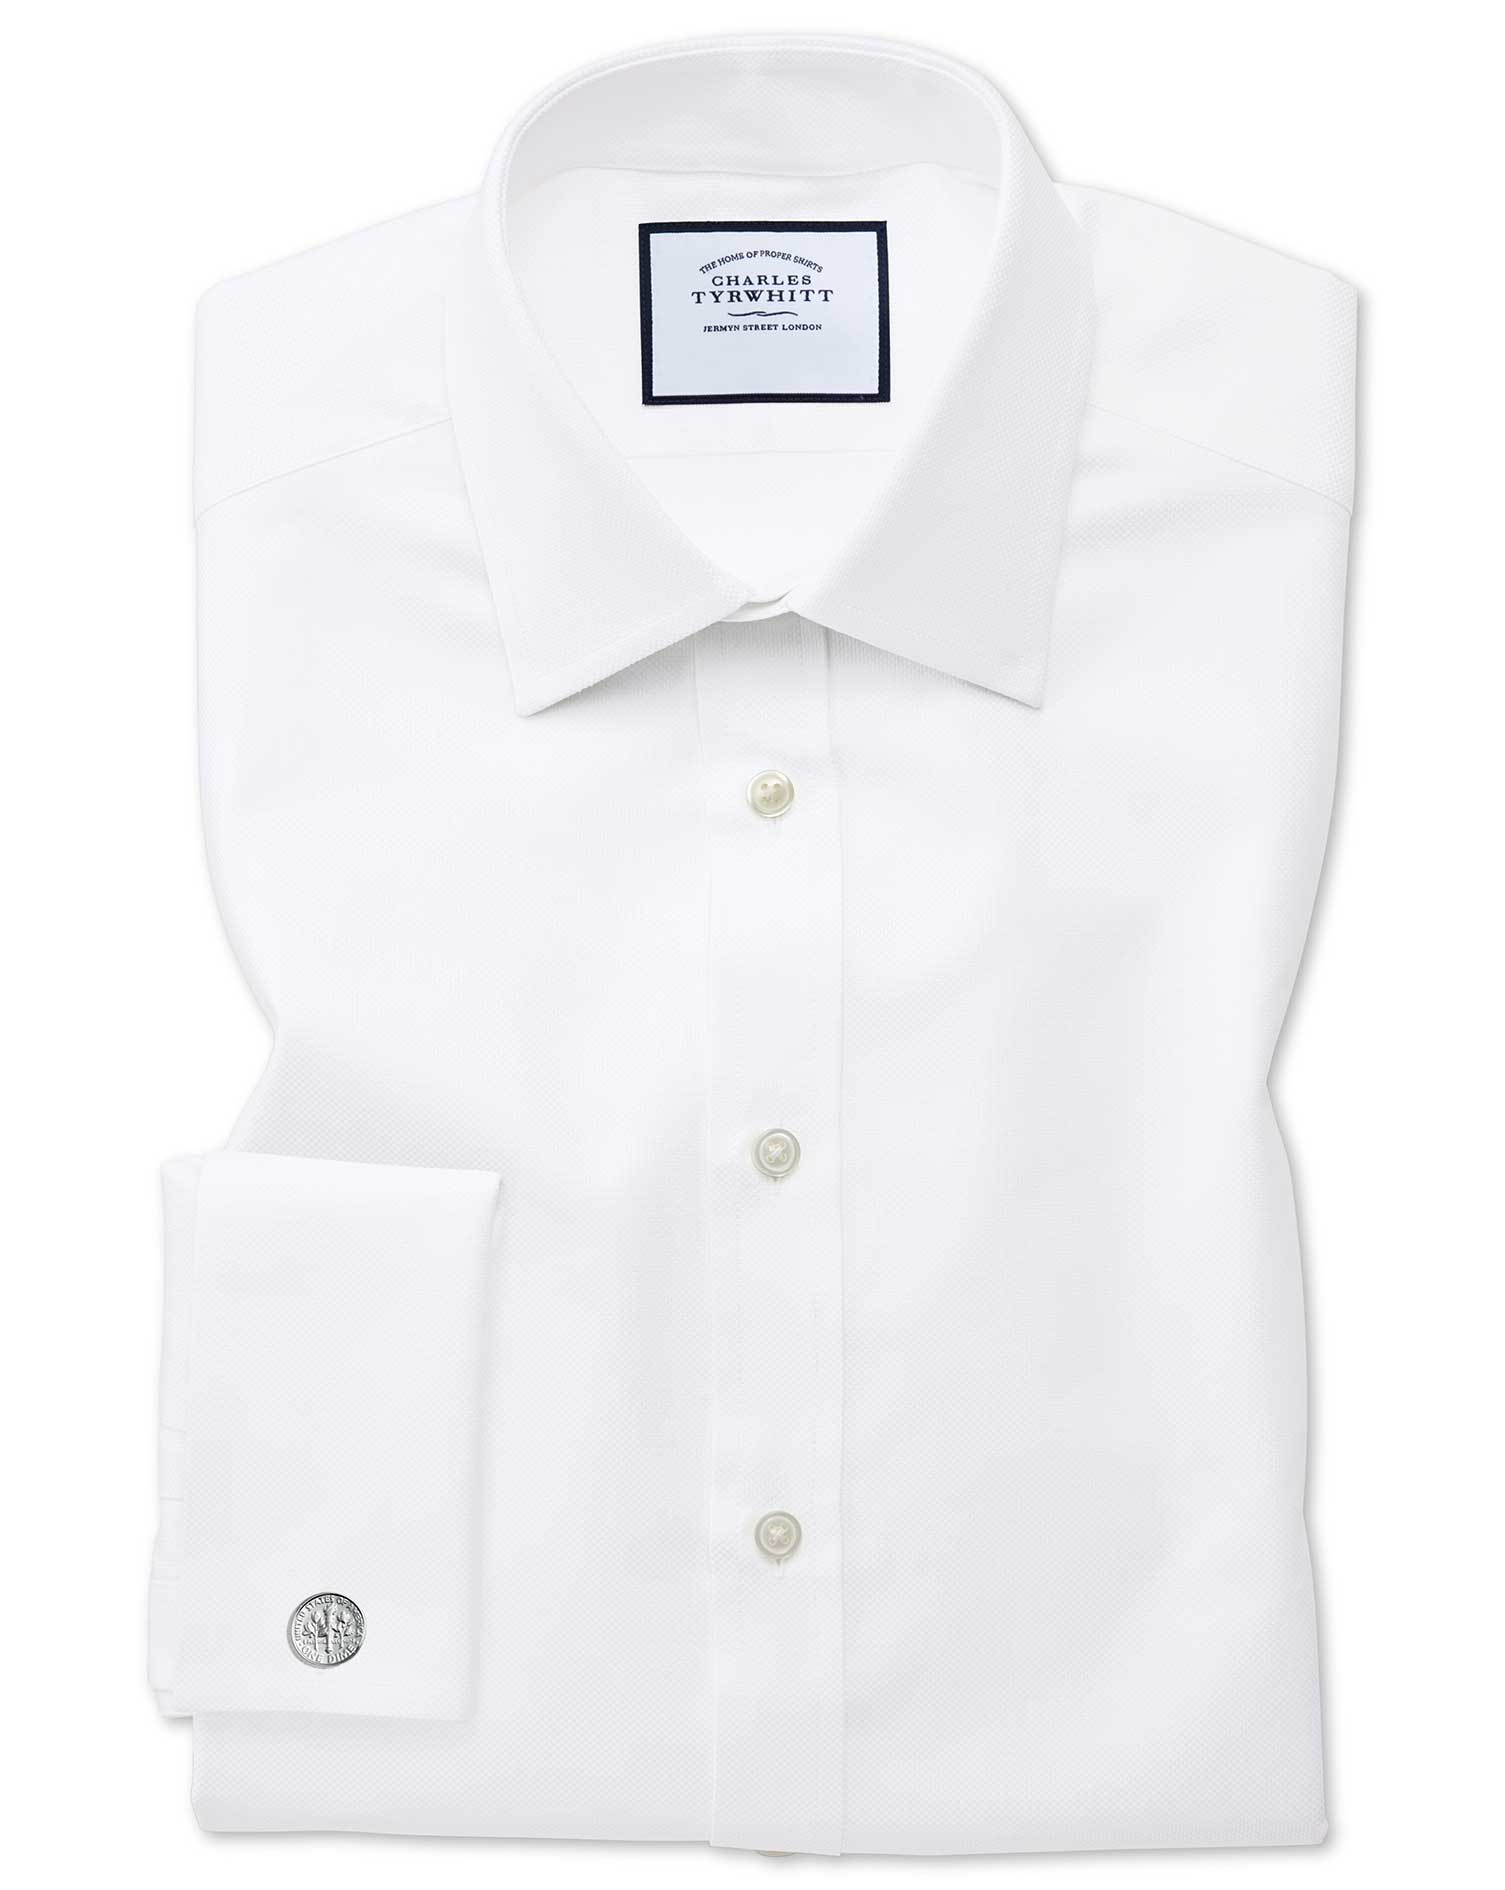 Classic Fit Egyptian Cotton Royal Oxford White Formal Shirt Single Cuff Size 16/34 by Charles Tyrwhi